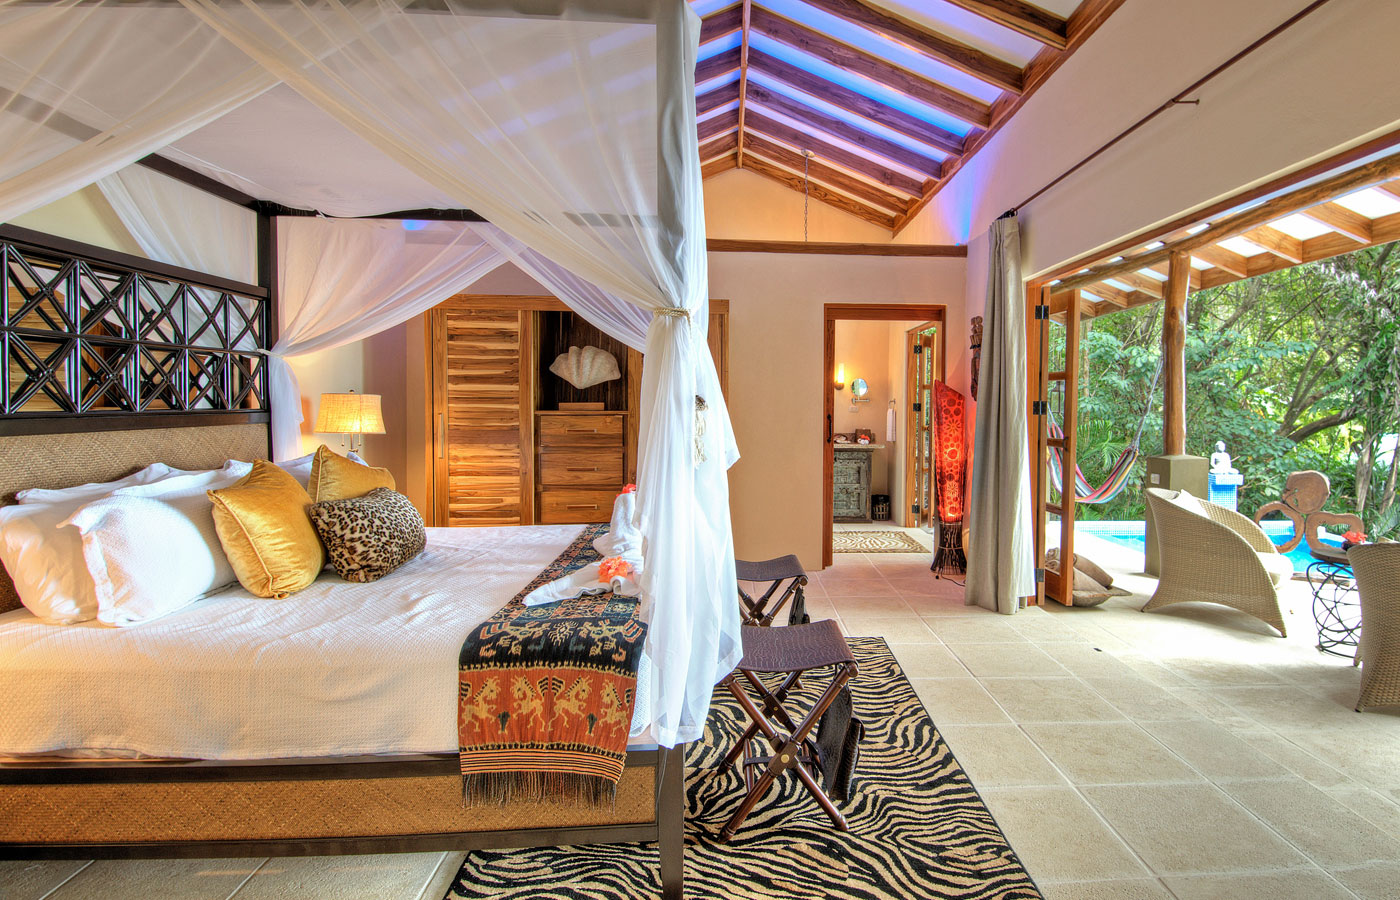 A stylish and secluded room at Casa Chameleon, Nicoya Peninsula, Costa Rica